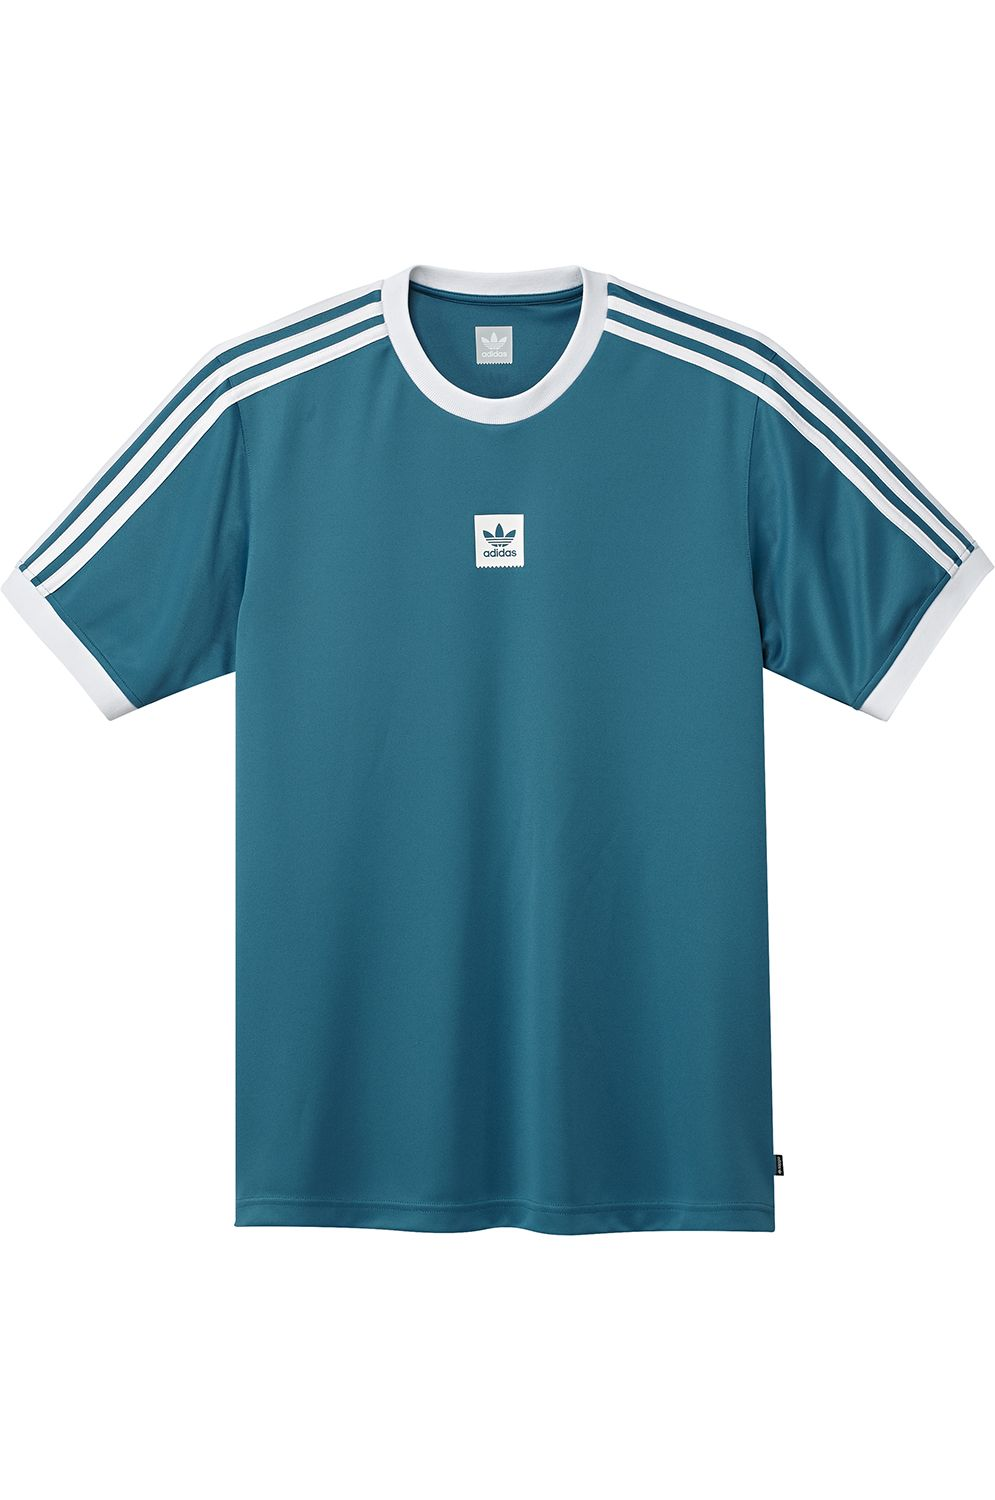 Adidas T-Shirt CLUB JERSEY Active Teal/White